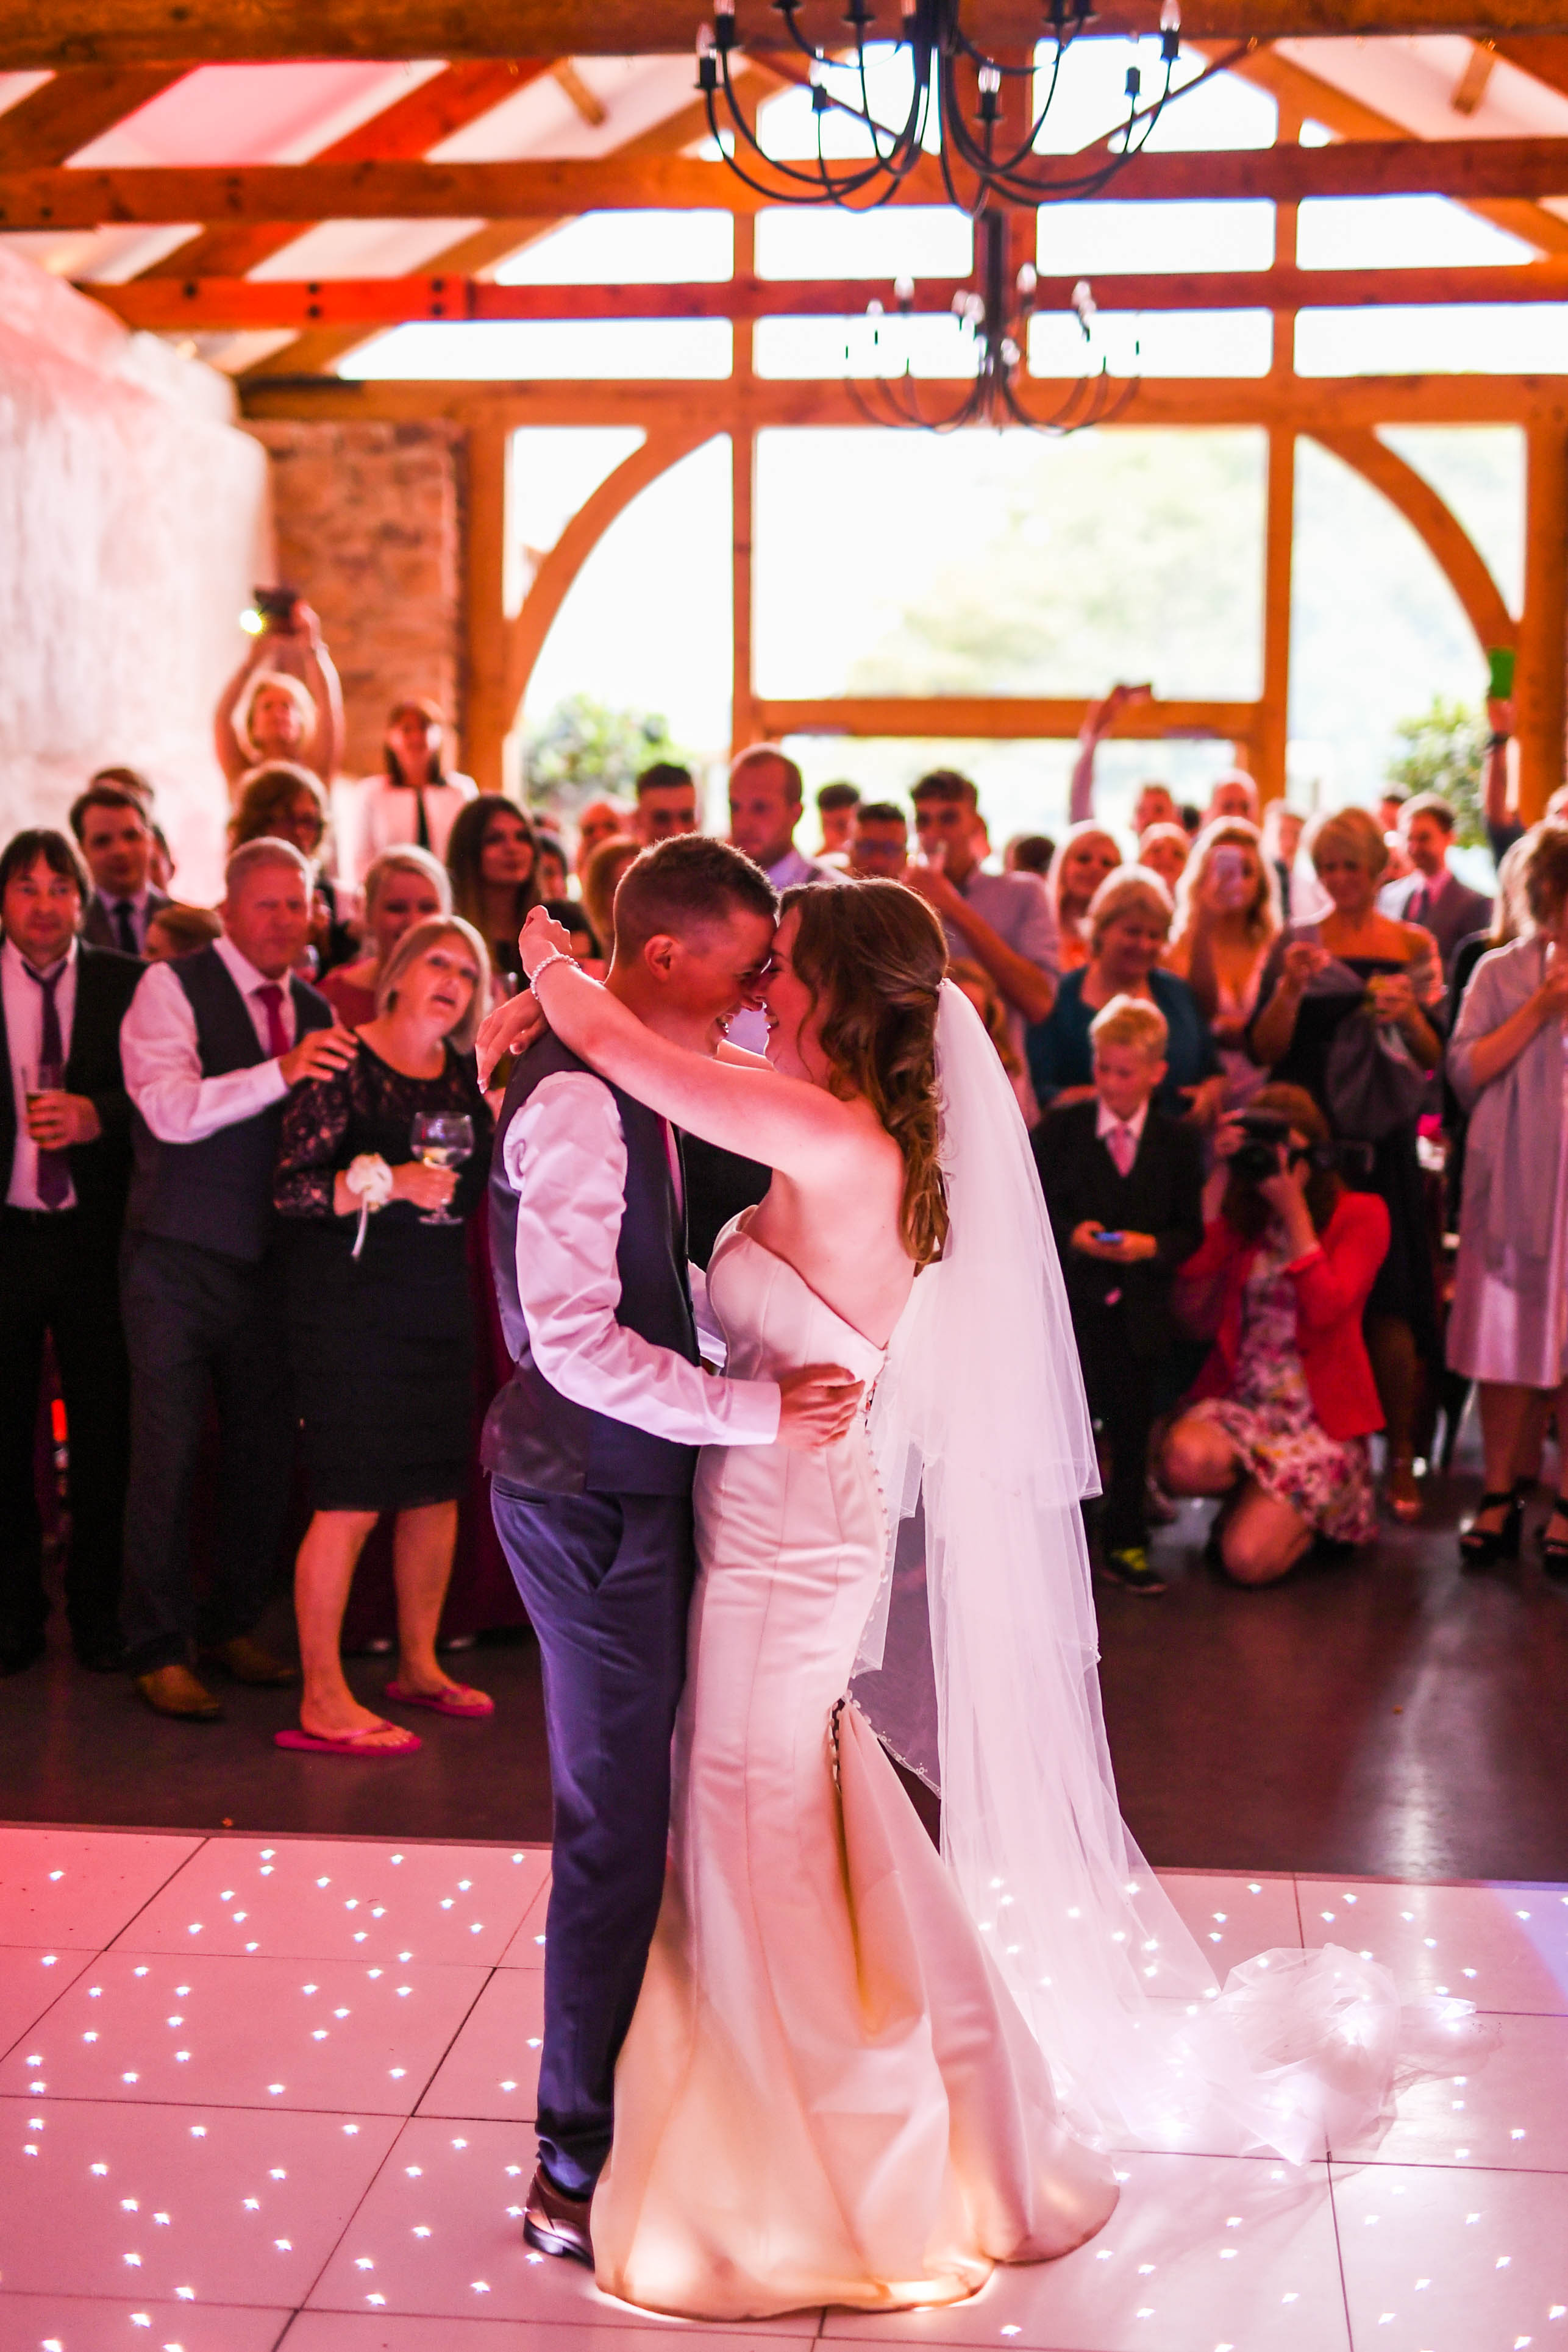 Bride and Groom take their first dance in the Cider Barn on a sparkly dancefloor